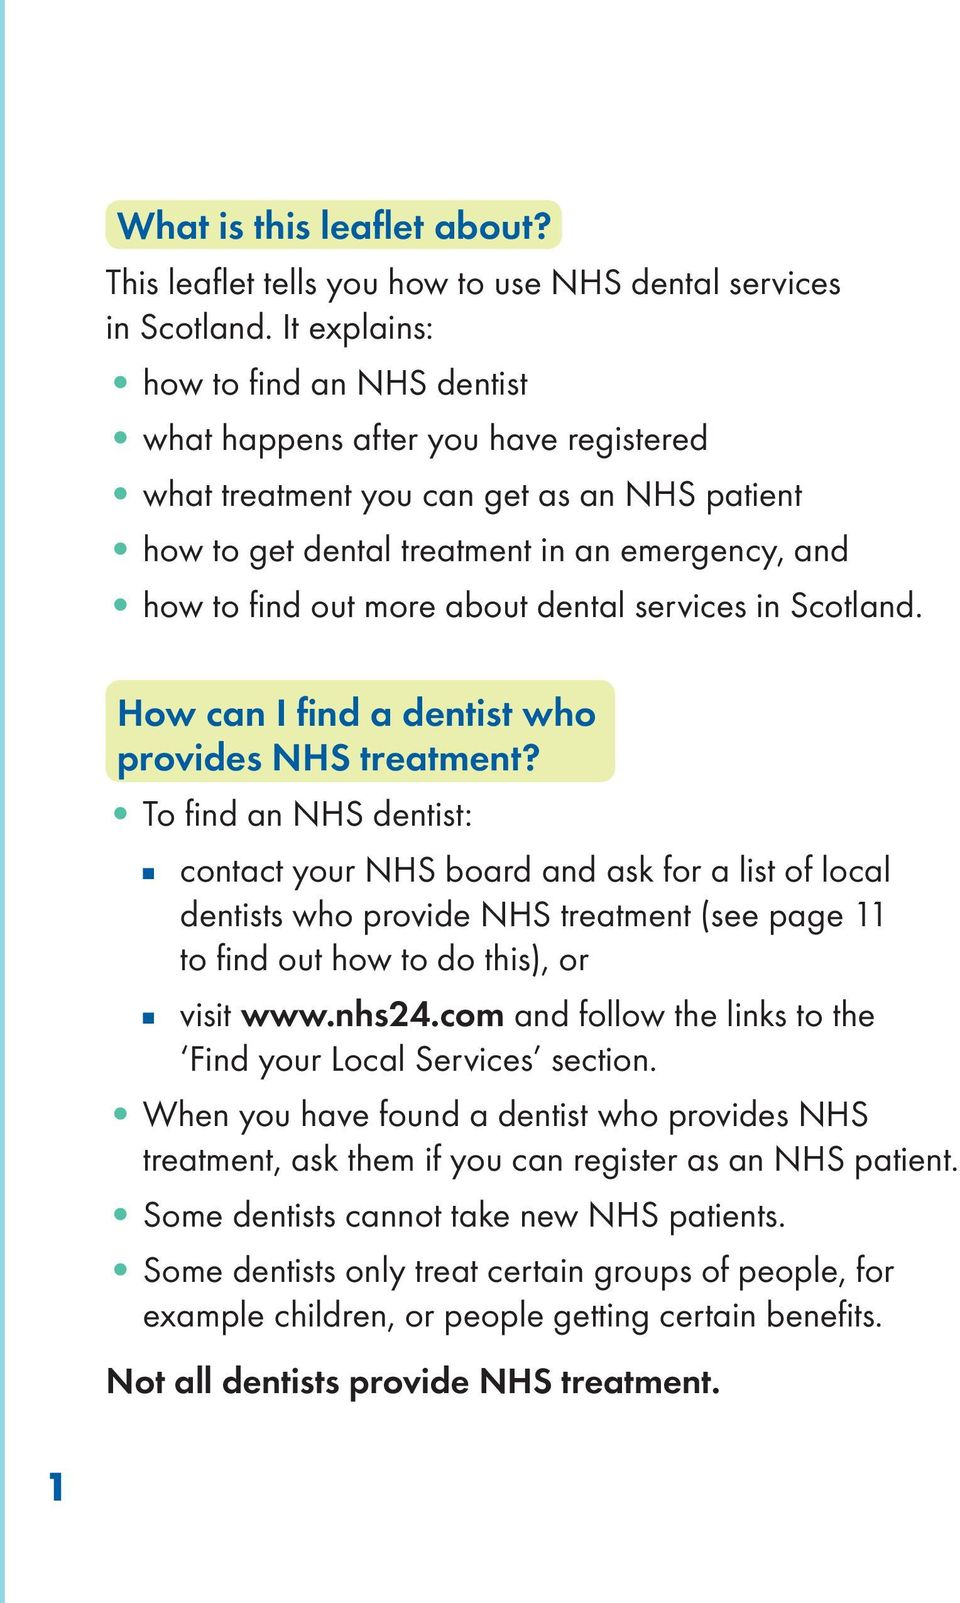 dental services in Scotland. How can I find a dentist who provides NHS treatment?